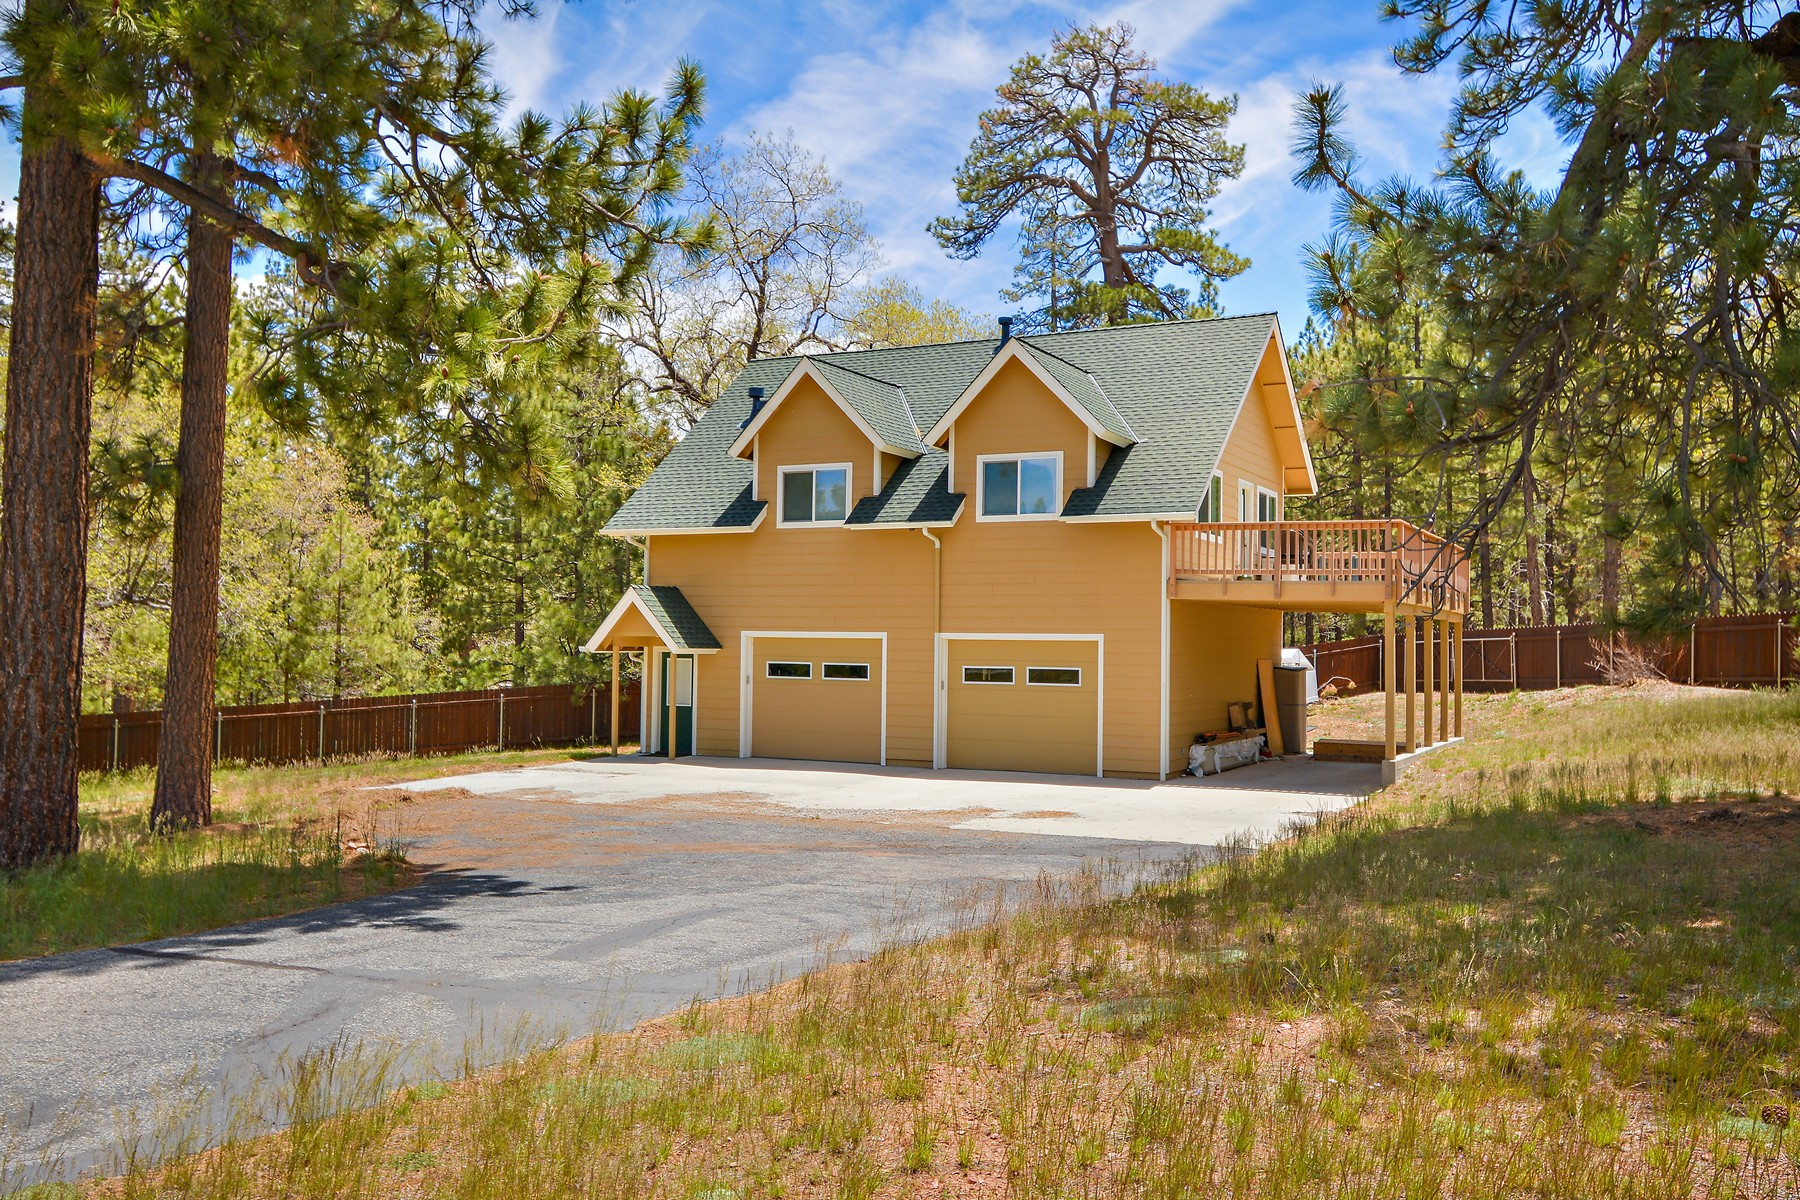 Single Family Homes for Sale at 42323 Switzerland Road, Big Bear Lake, California, 92315 42323 Switzerland Road Big Bear Lake, California 92315 United States